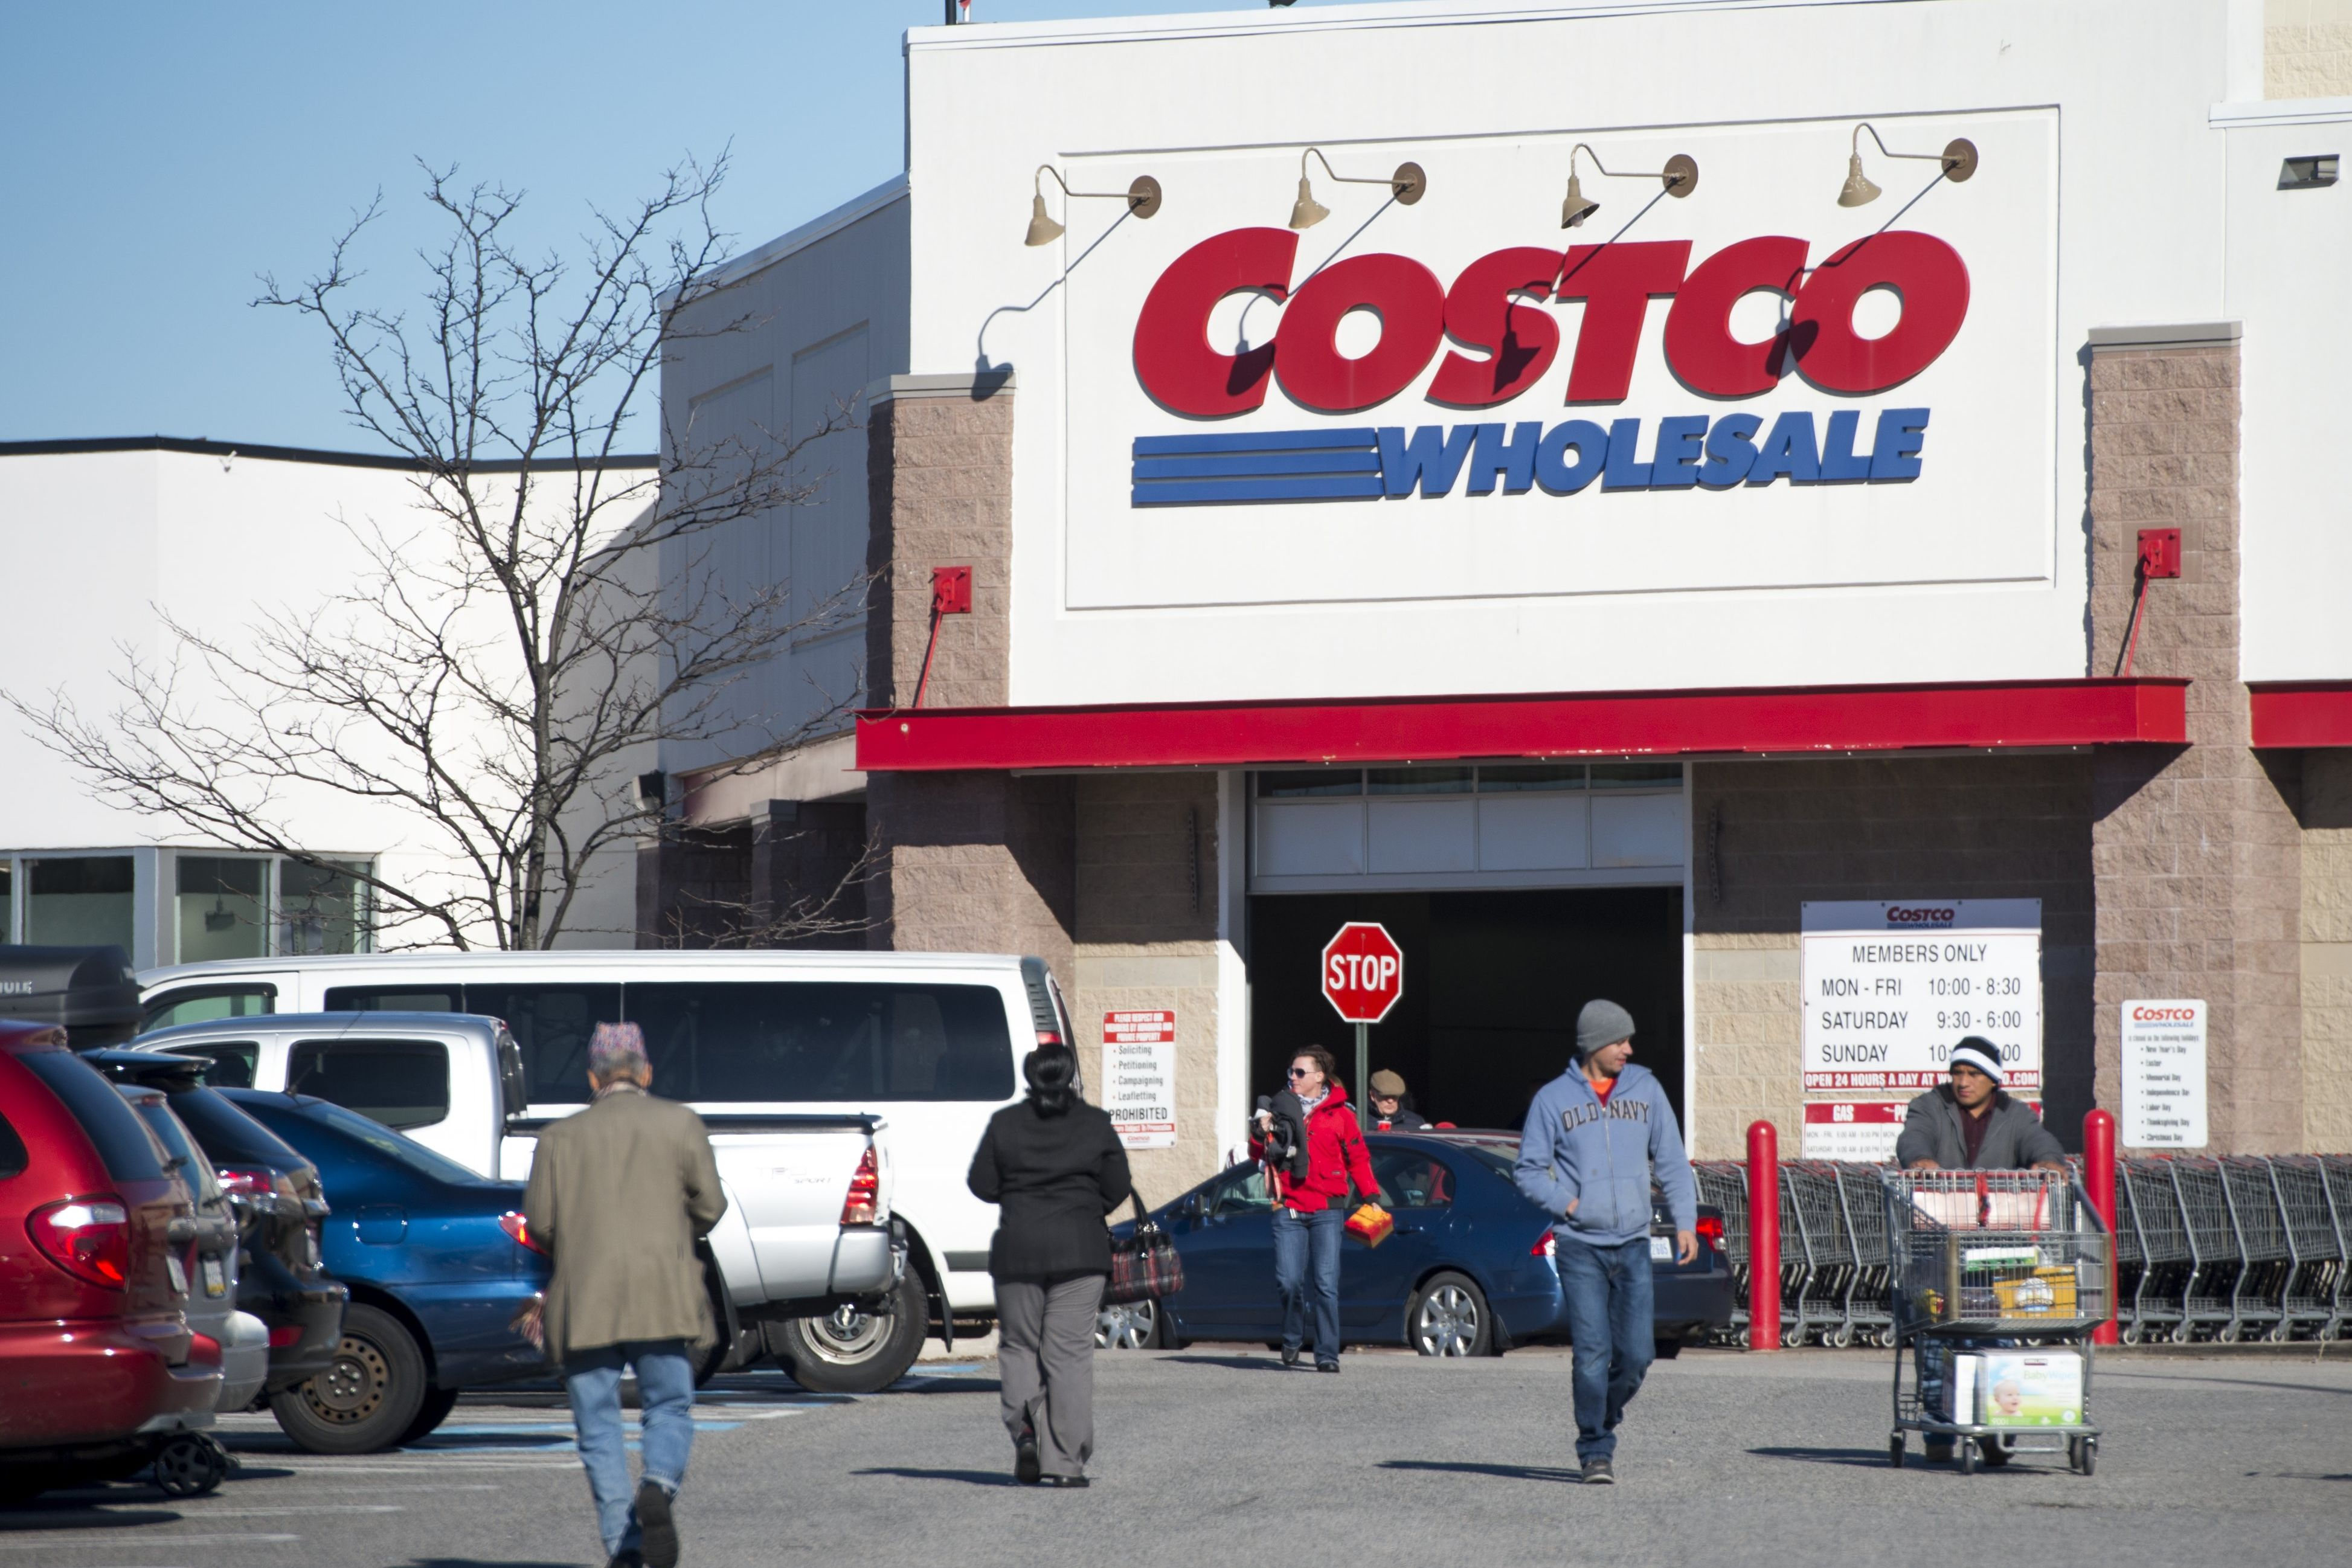 Good News for Costco Fans: Home Delivery Coming Soon!